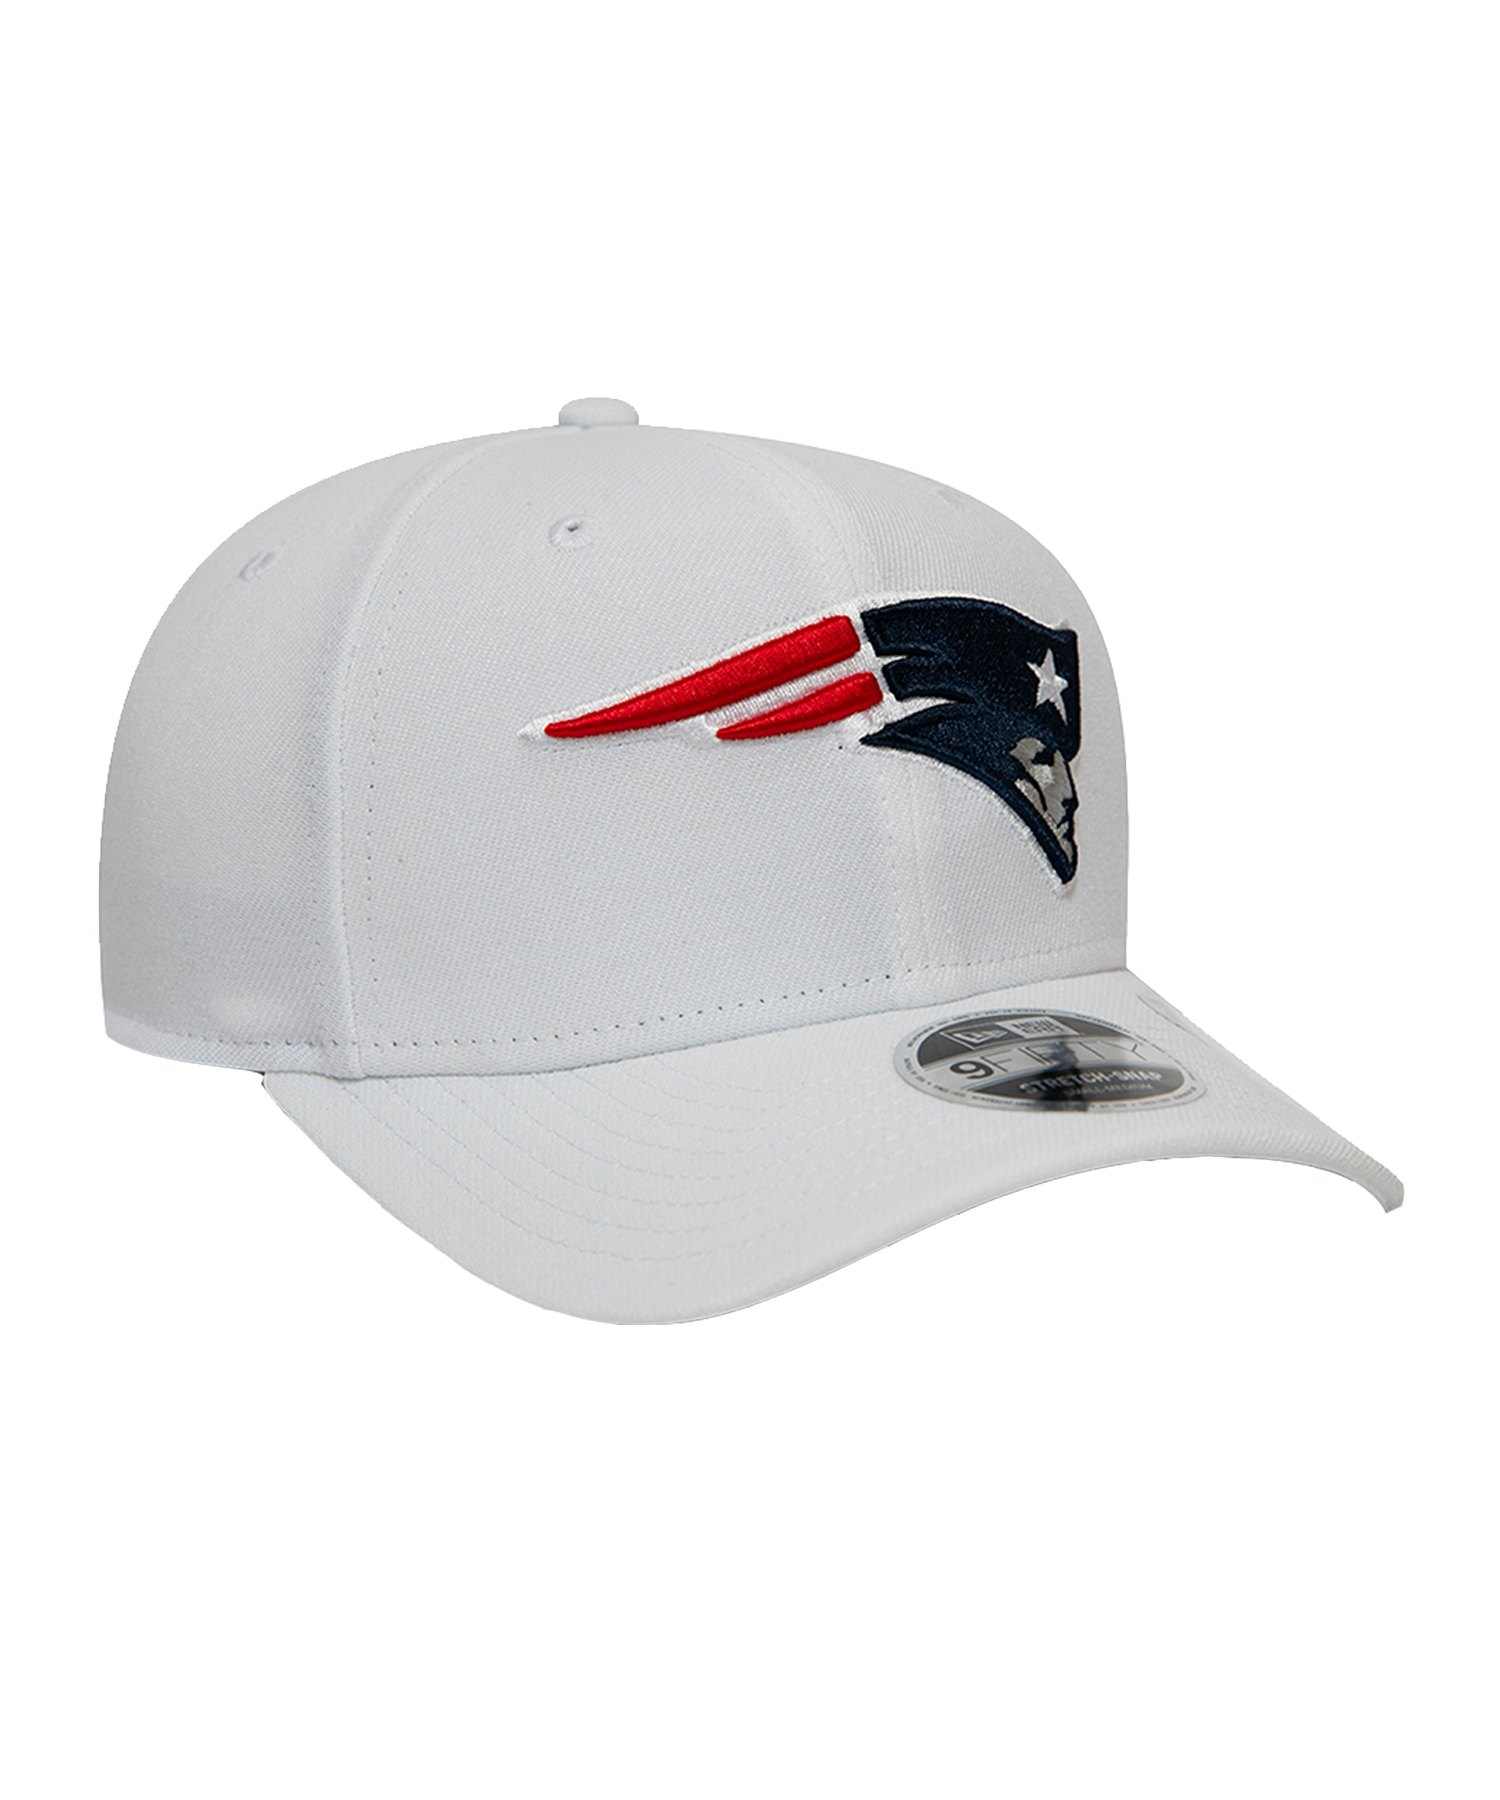 New Era NFL New England Patriots 9Fifty Cap Weiss - weiss